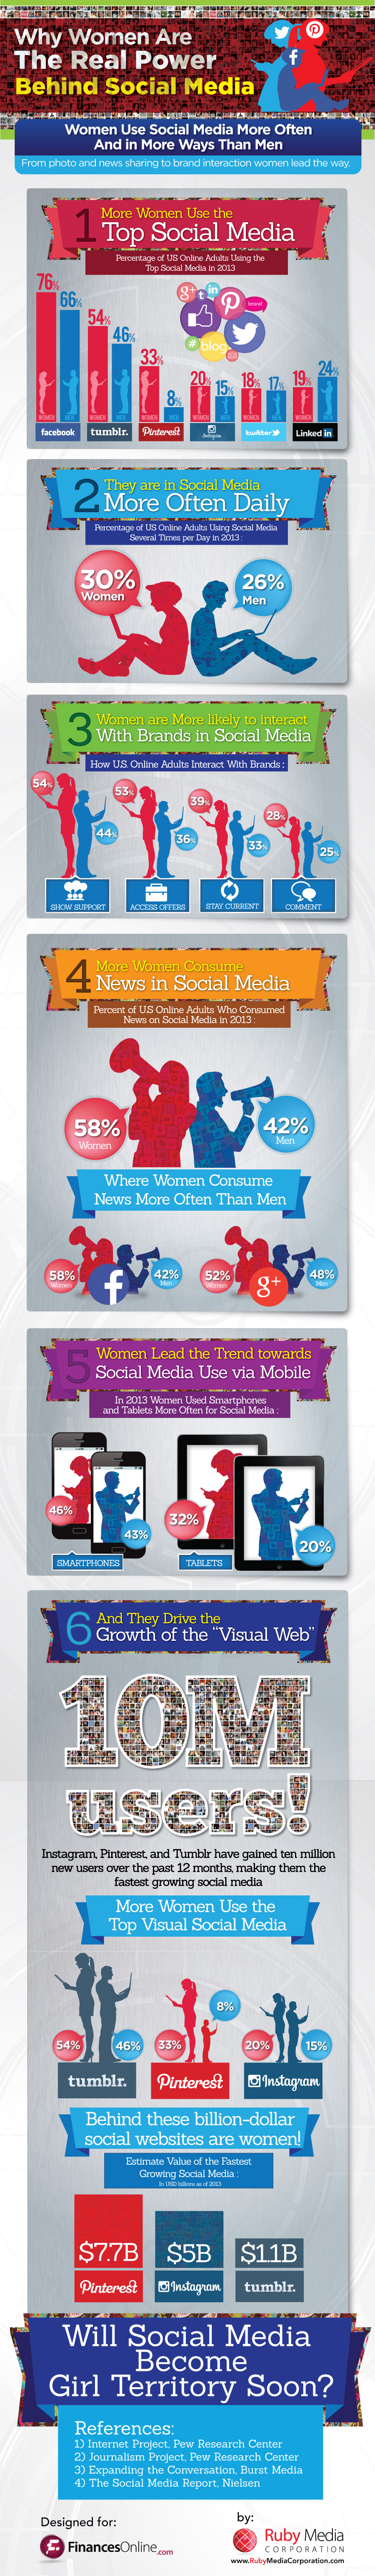 Women Dominate Social Media